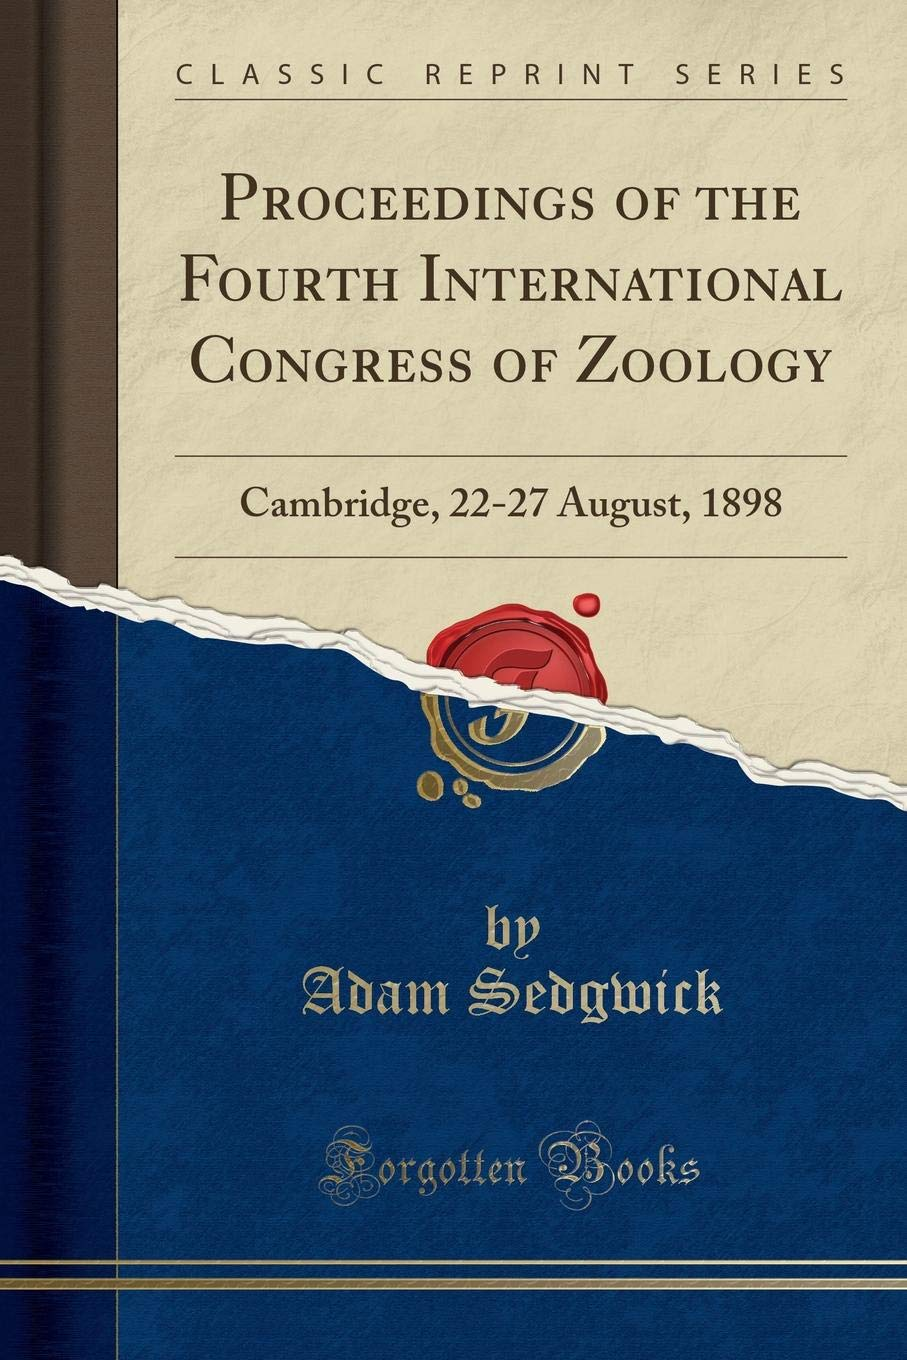 Proceedings of the Fourth International Congress of Zoology: Cambridge, 22-27 August, 1898 (Classic Reprint) (German Edition) pdf